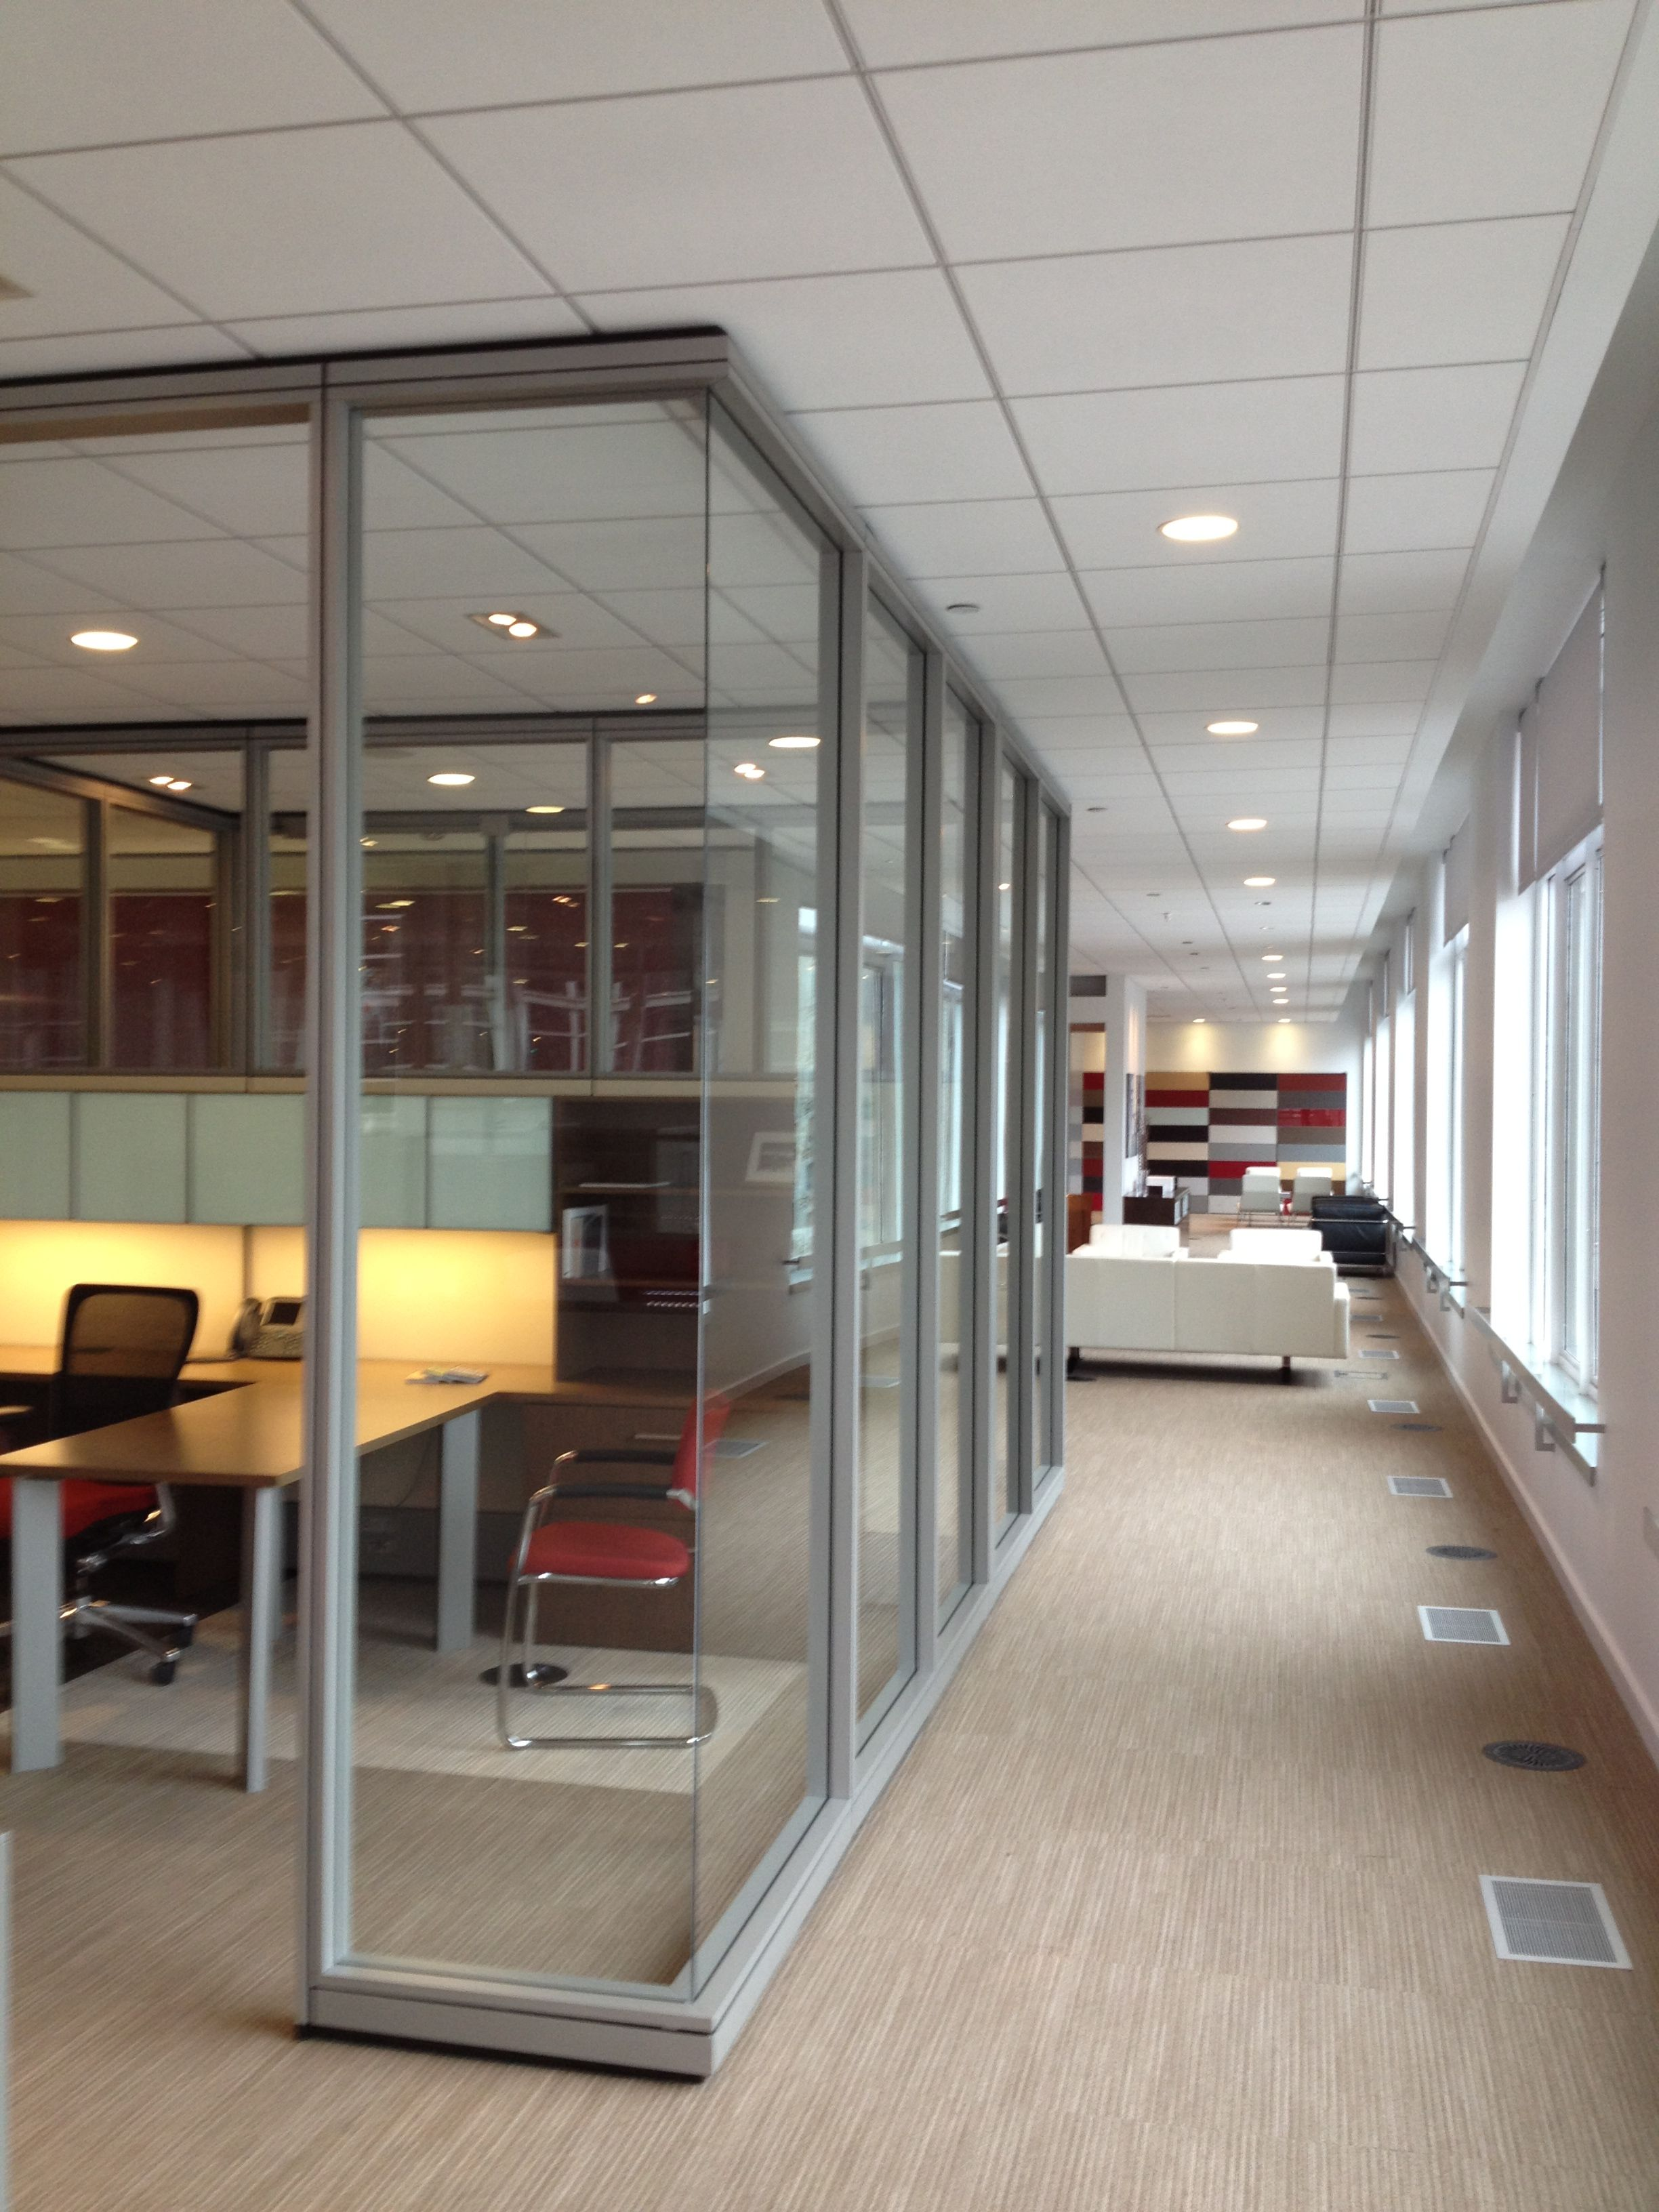 Private offices enclose moveable walls frameless glass - Best way to soundproof interior walls ...